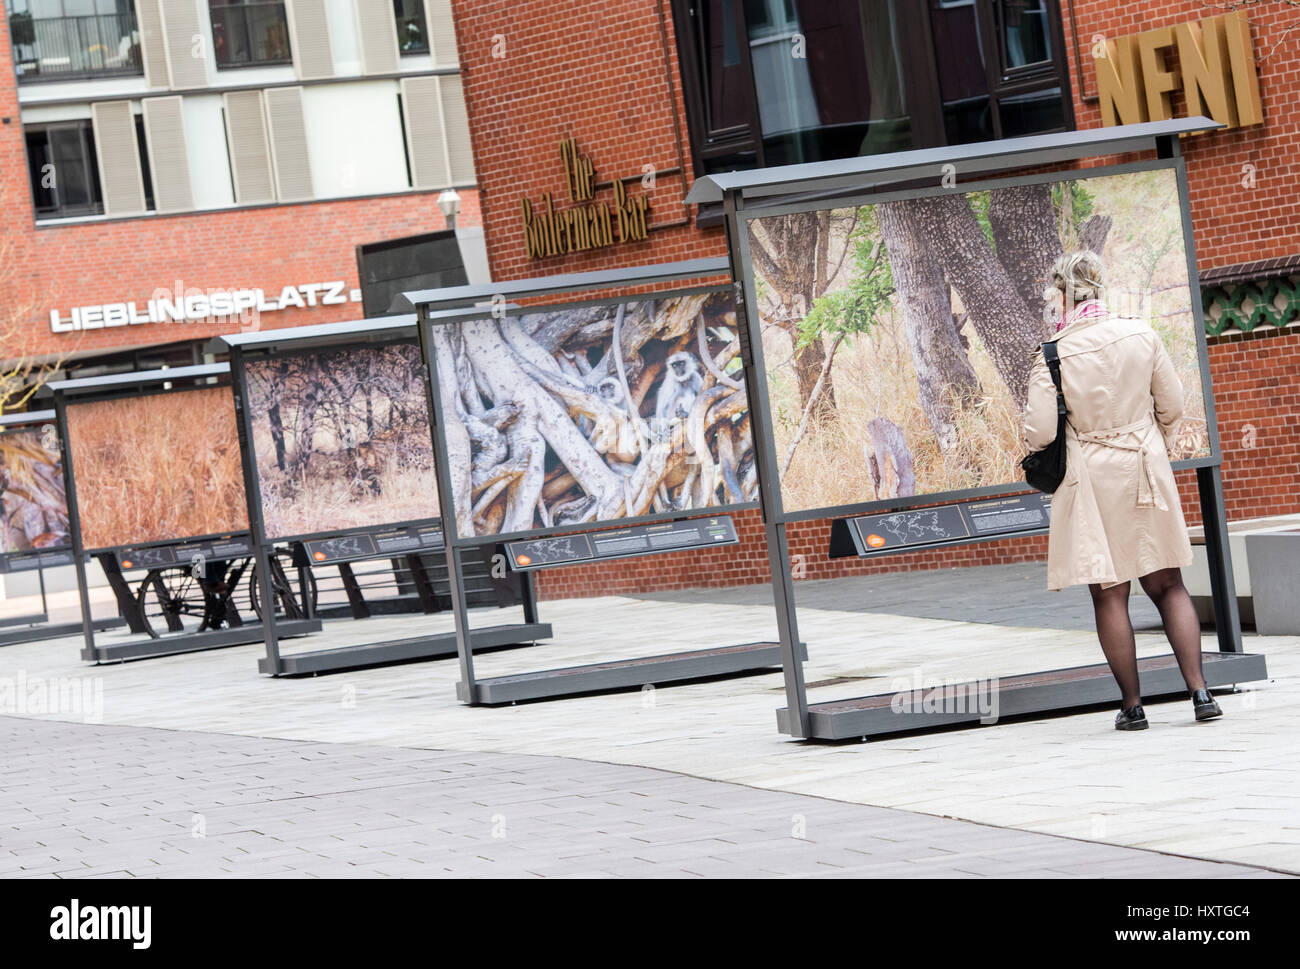 Hamburg, Germany. 30th Mar, 2017. A woman looks at works on display as part of the city of Hamburg's 'Masterfully - Stock Image